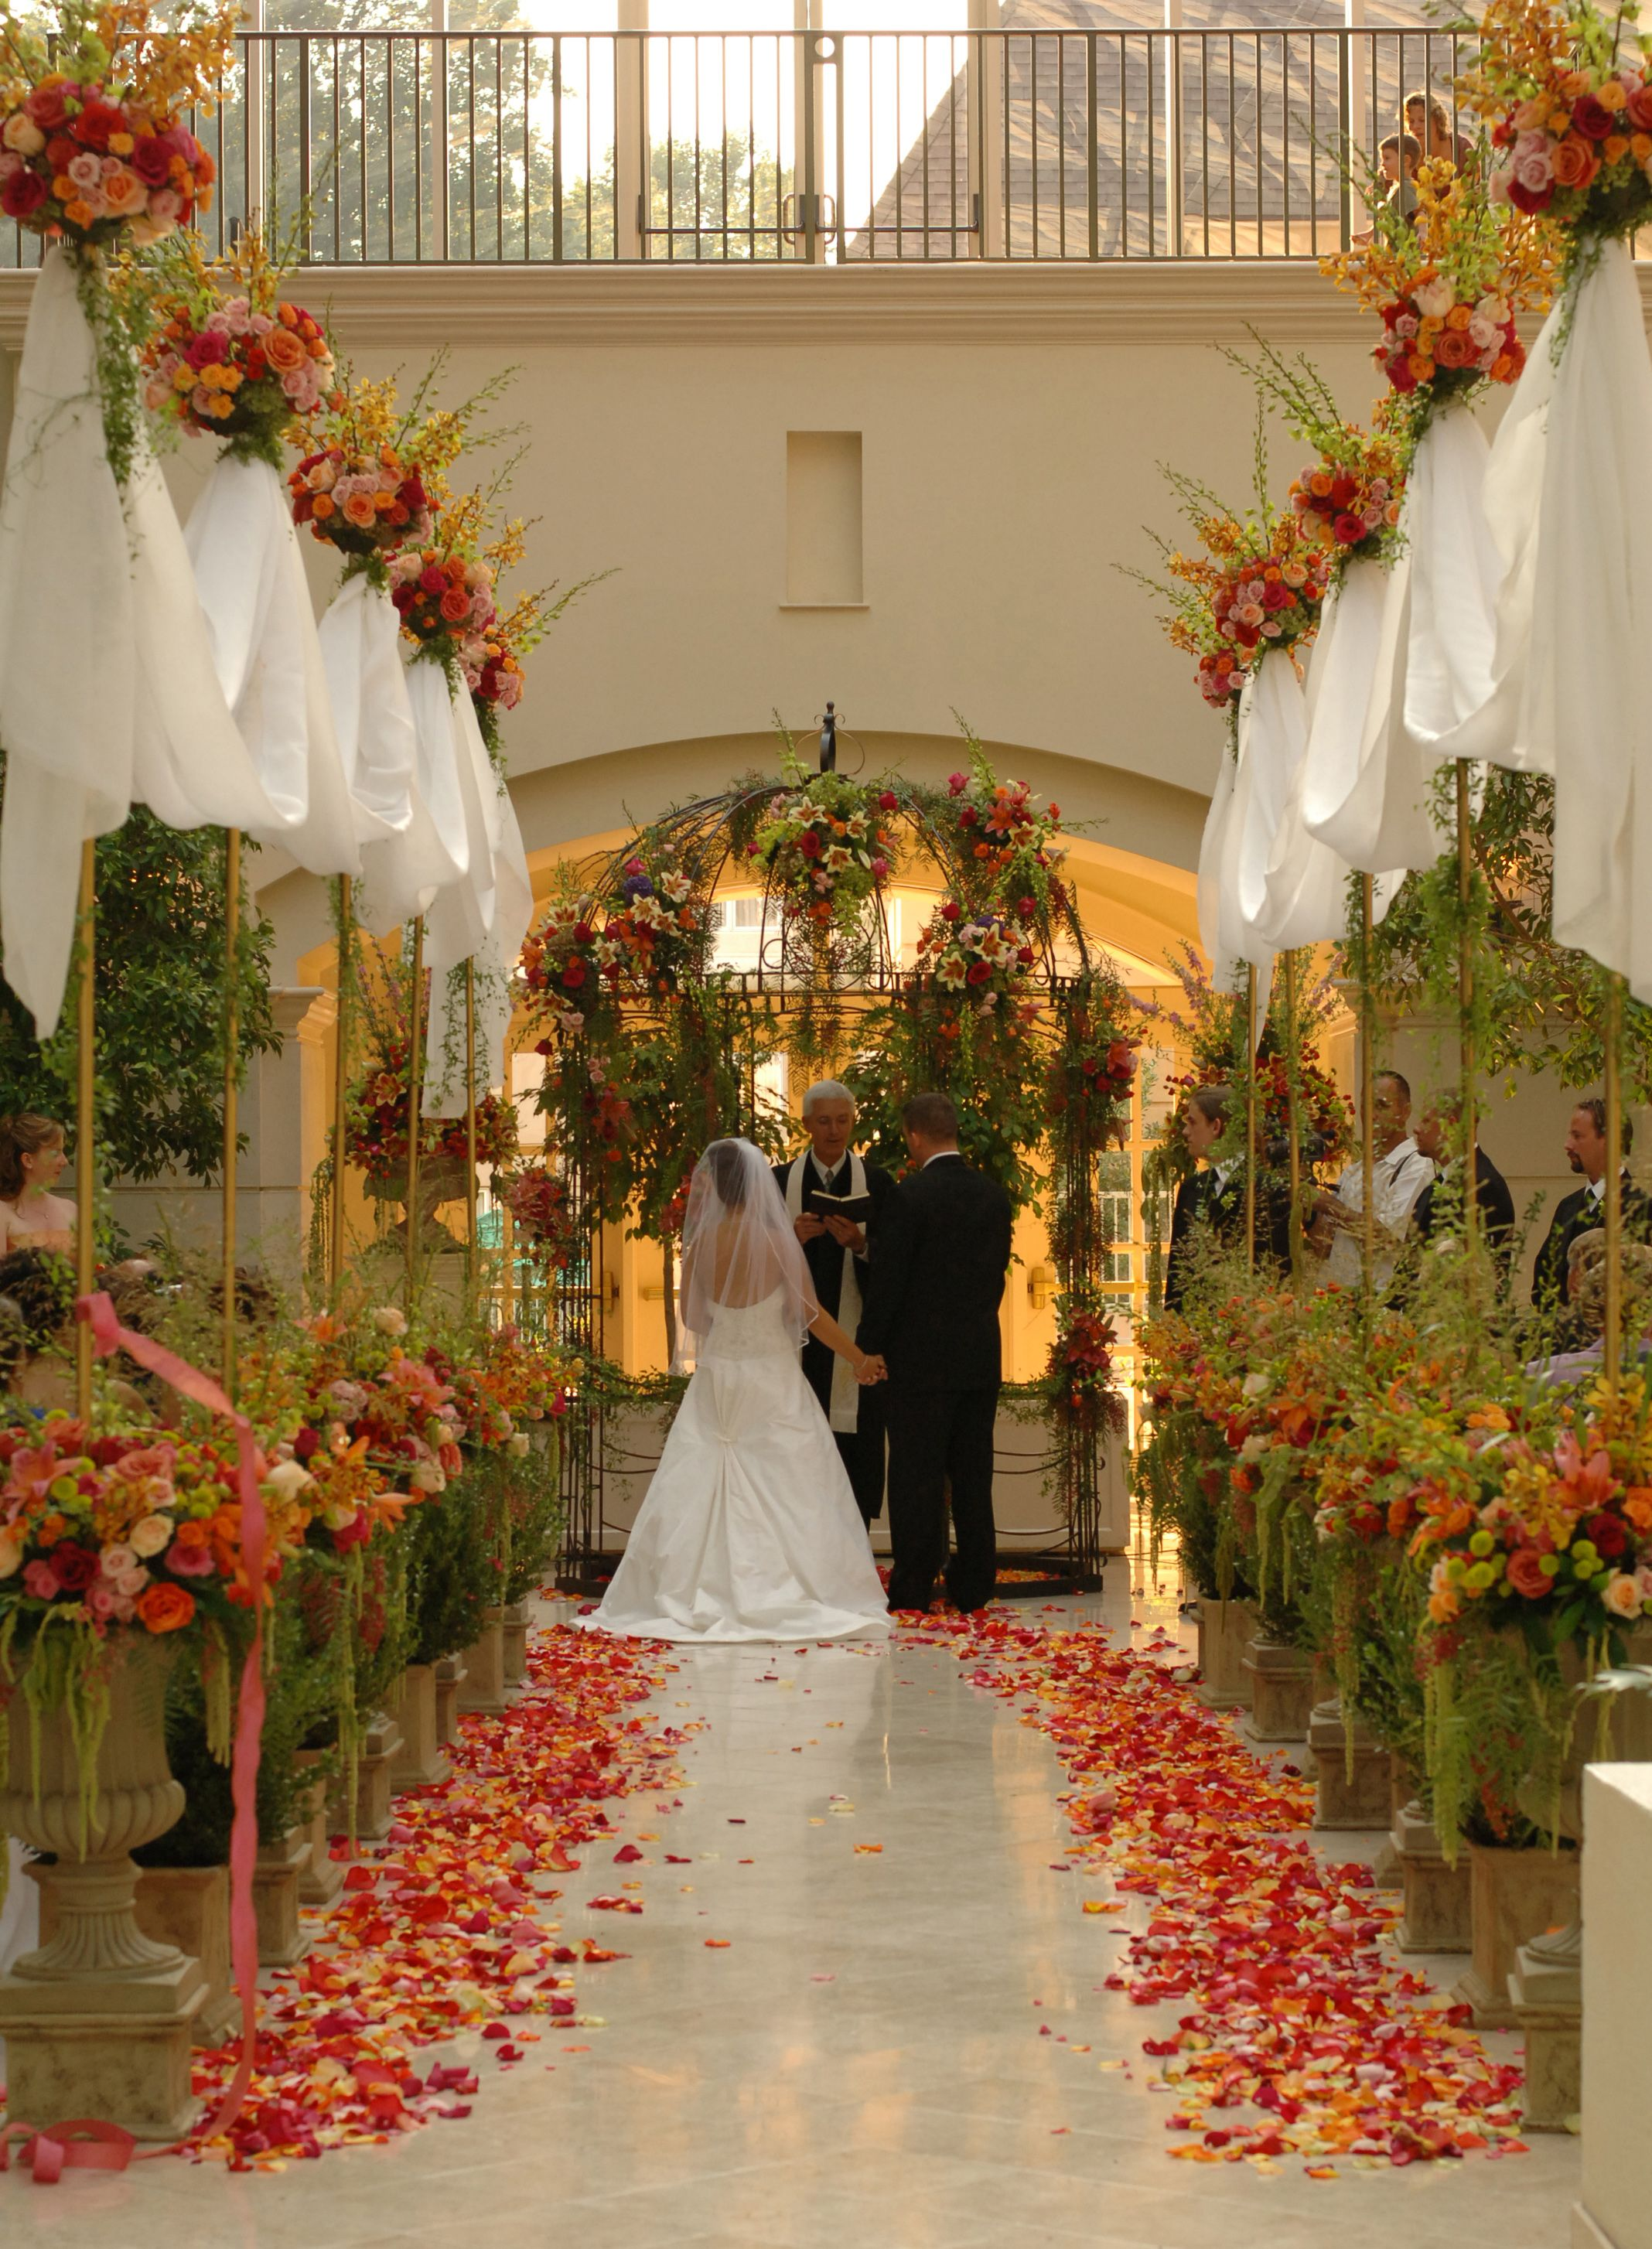 Intimate rustic wedding ceremony in the Chateau Elan